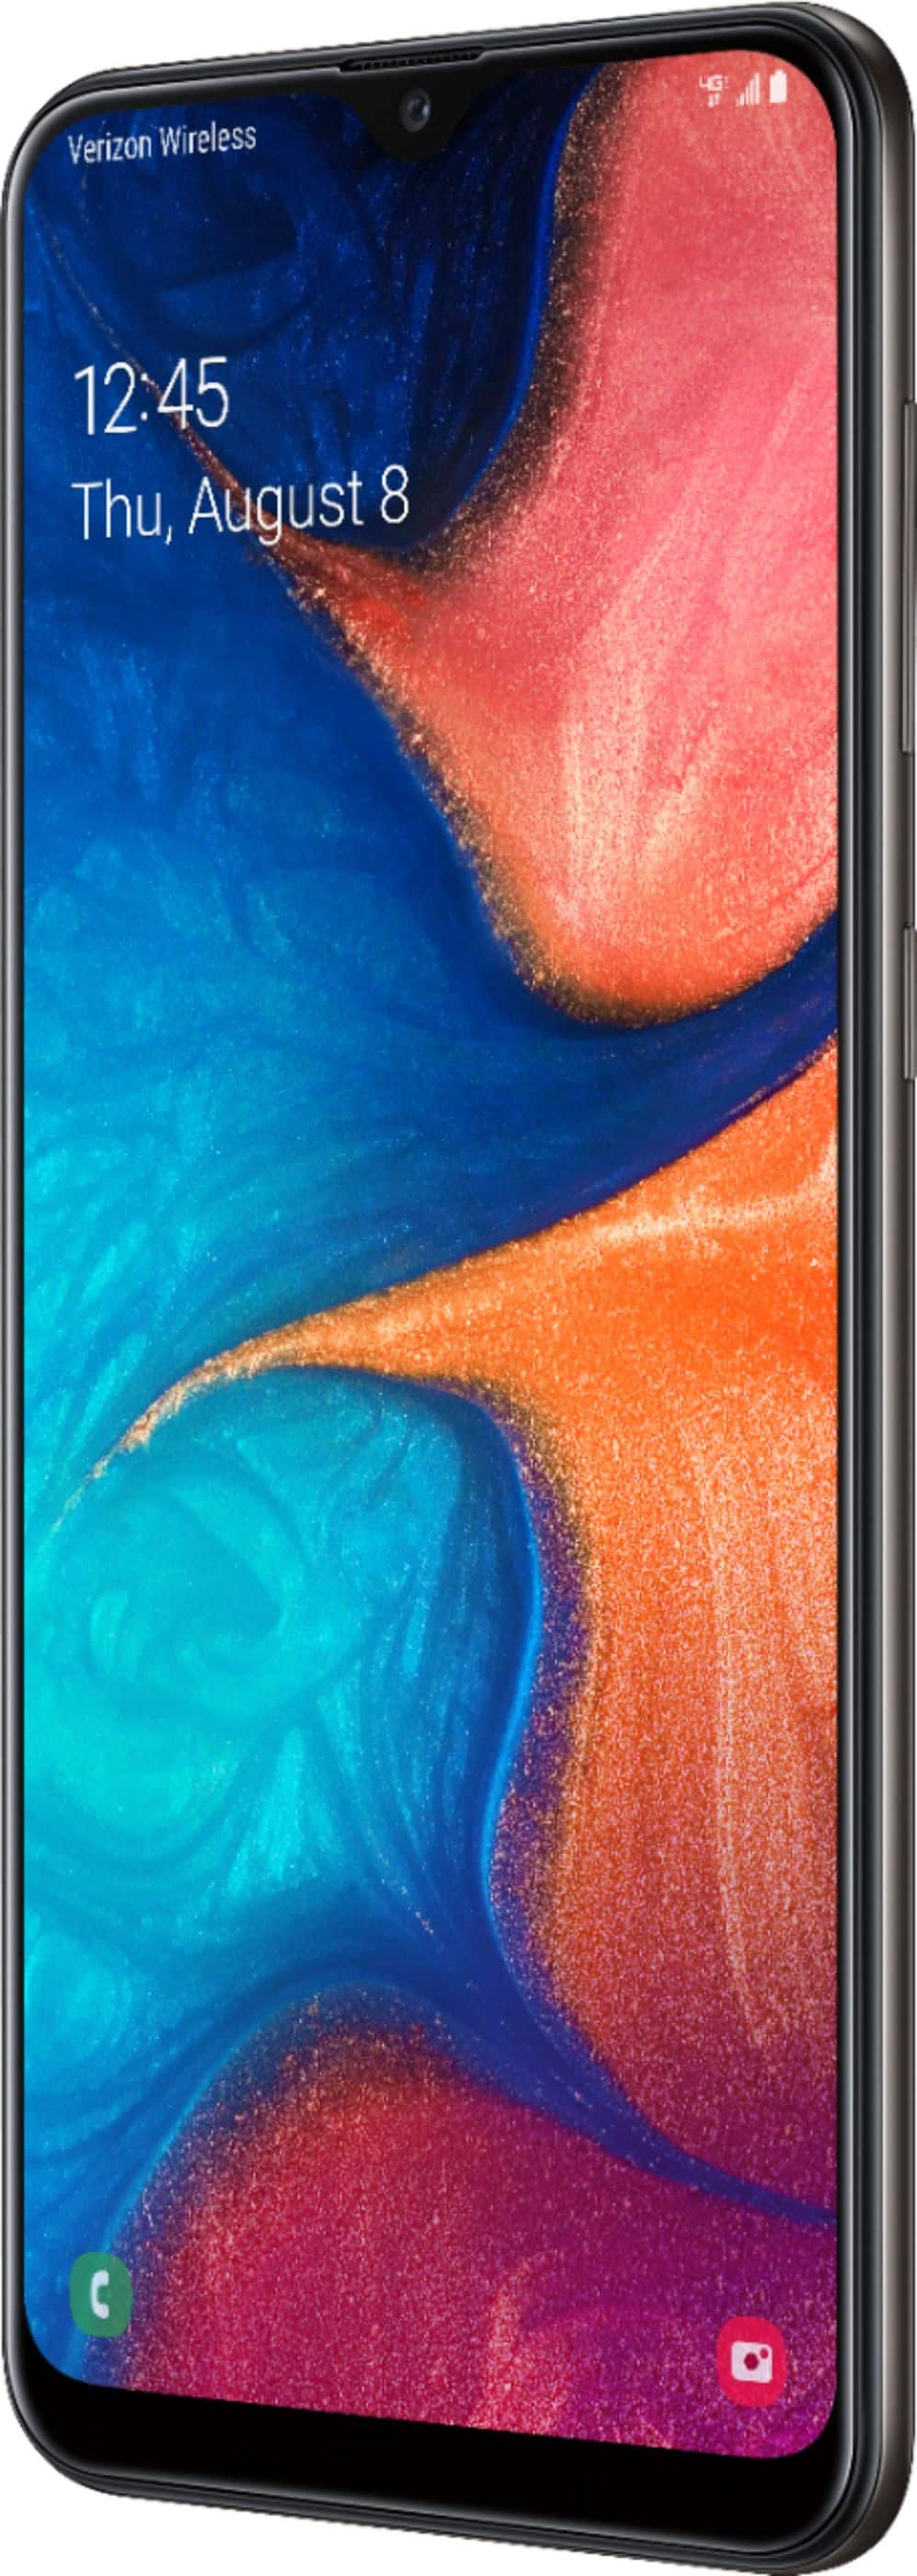 Samsung - Galaxy A20 with 32GB Memory Cell Phone (Unlocked) - Black - With Sprint activation - $99